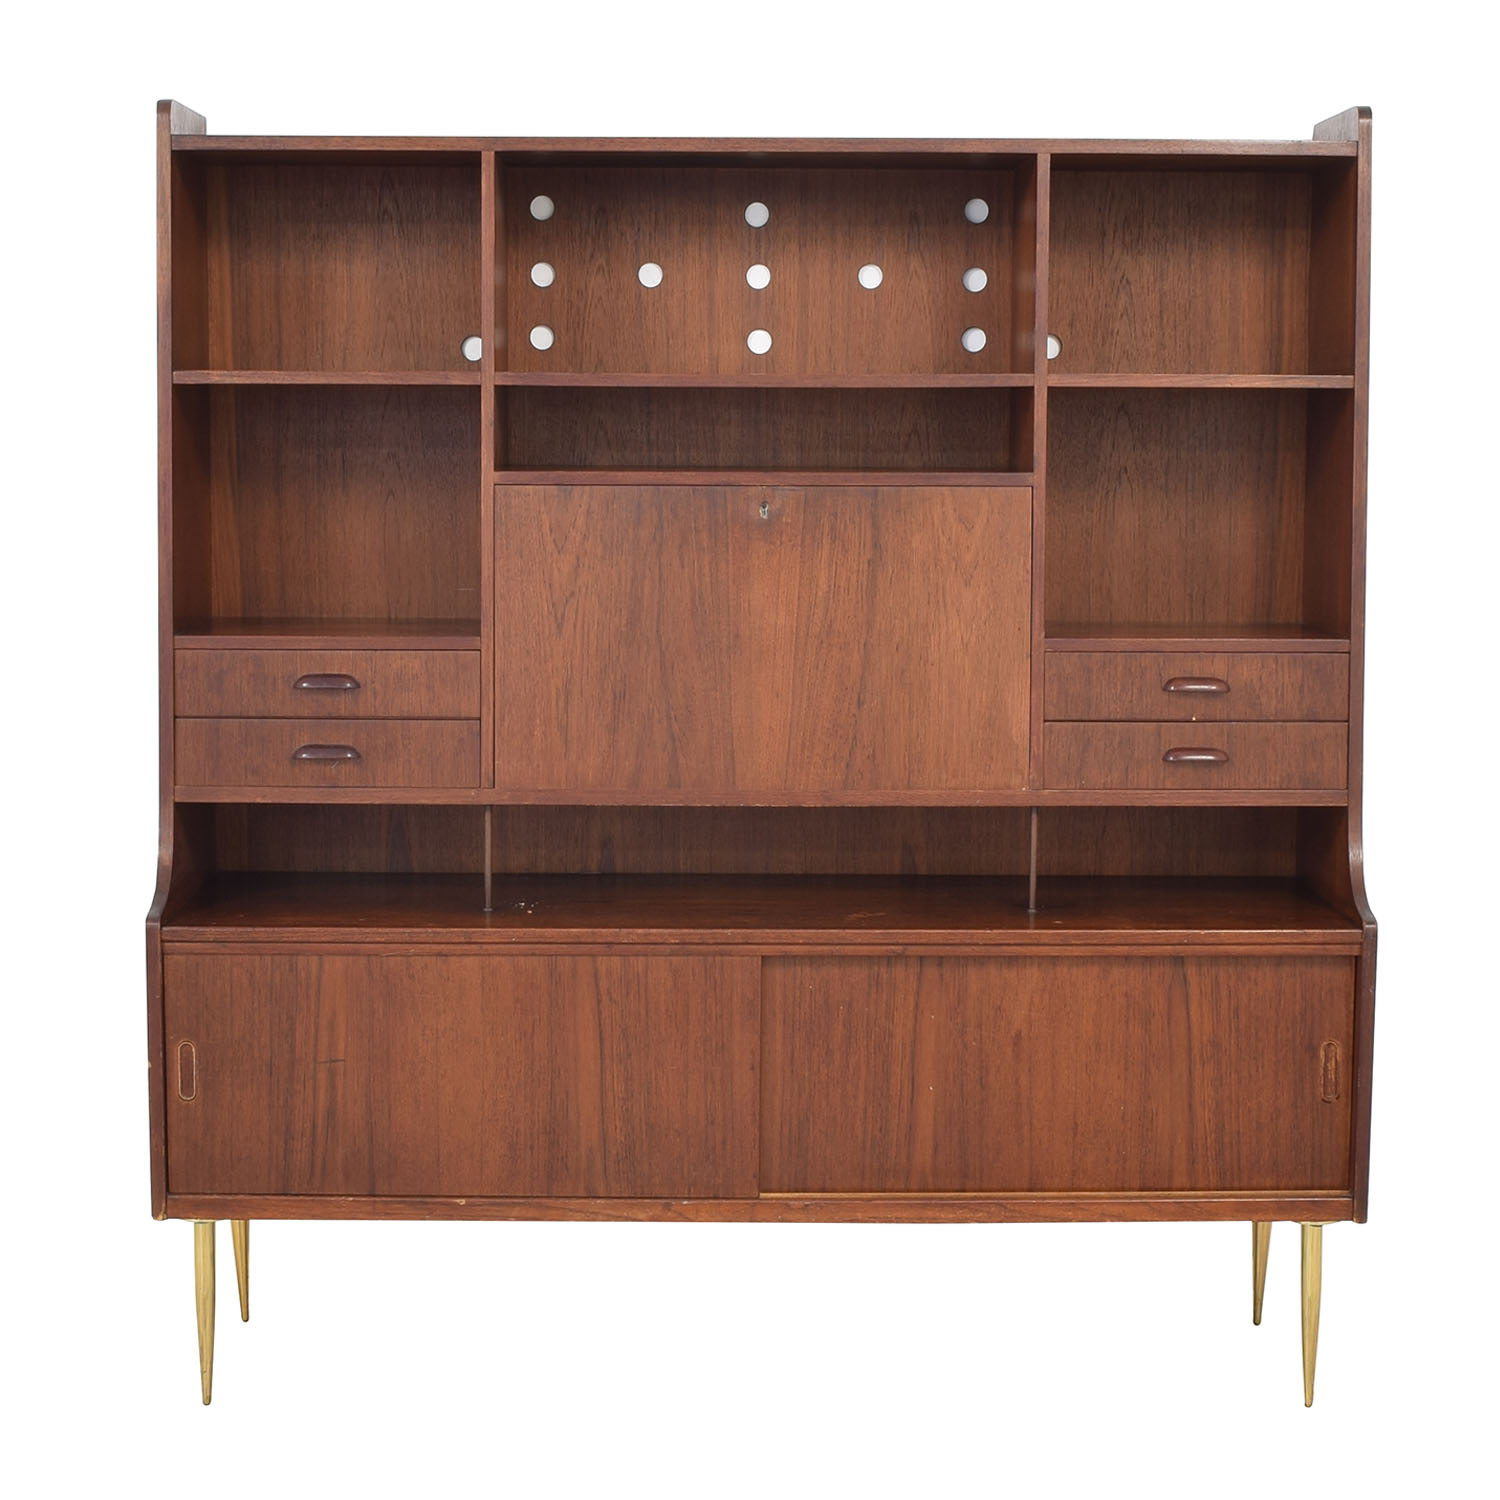 Vintage Mid-Century Hutch with Desk for sale